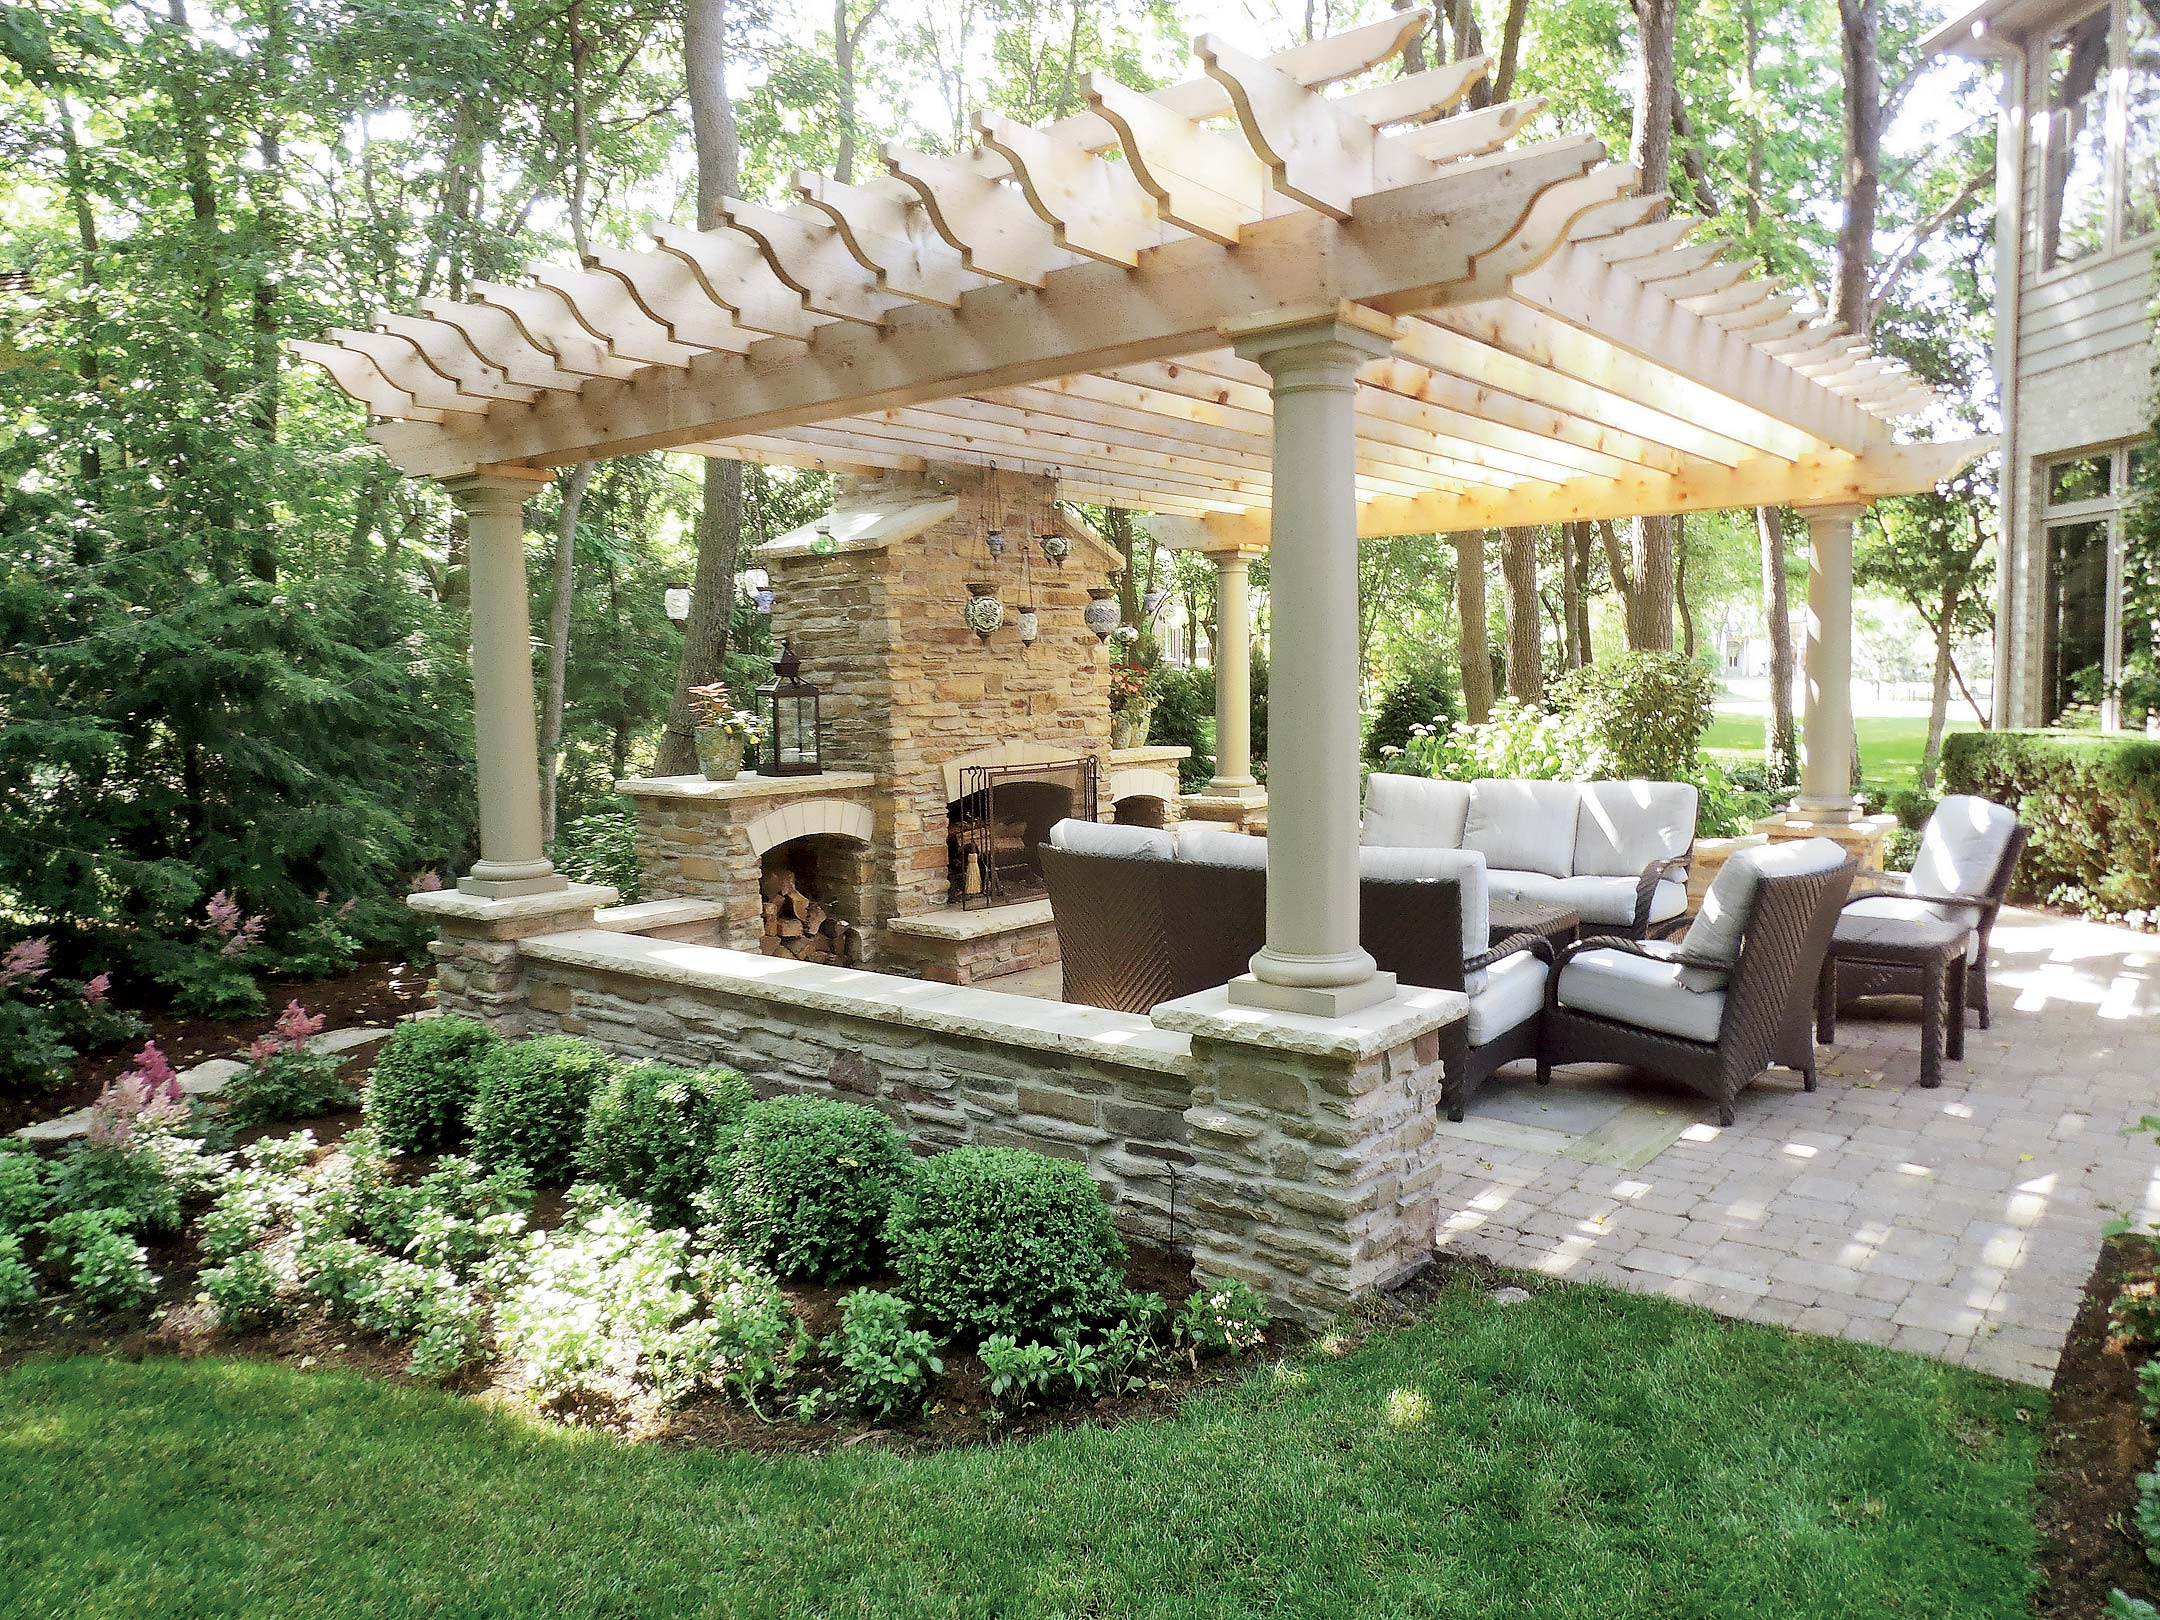 Backyard structures for entertaining for Garden patio ideas